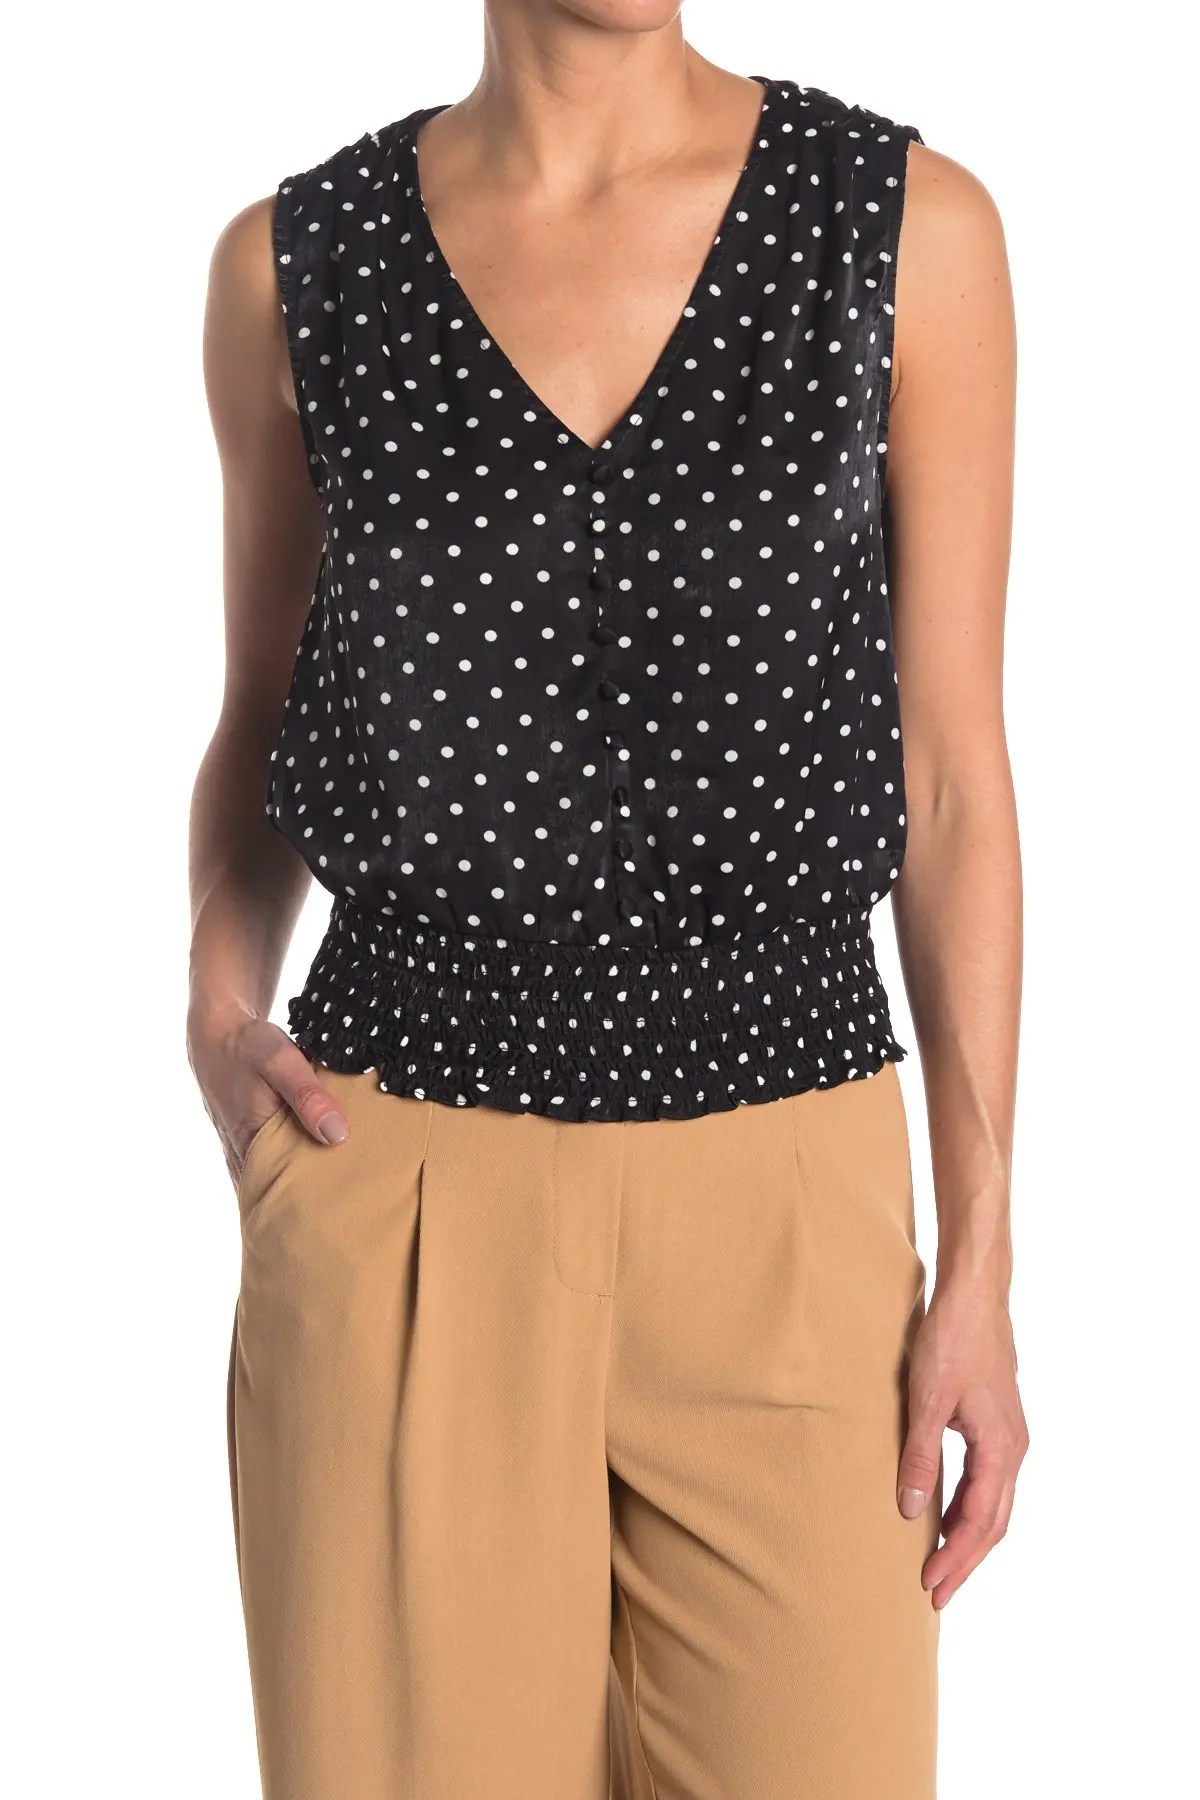 tops for women clearance nordstrom rack